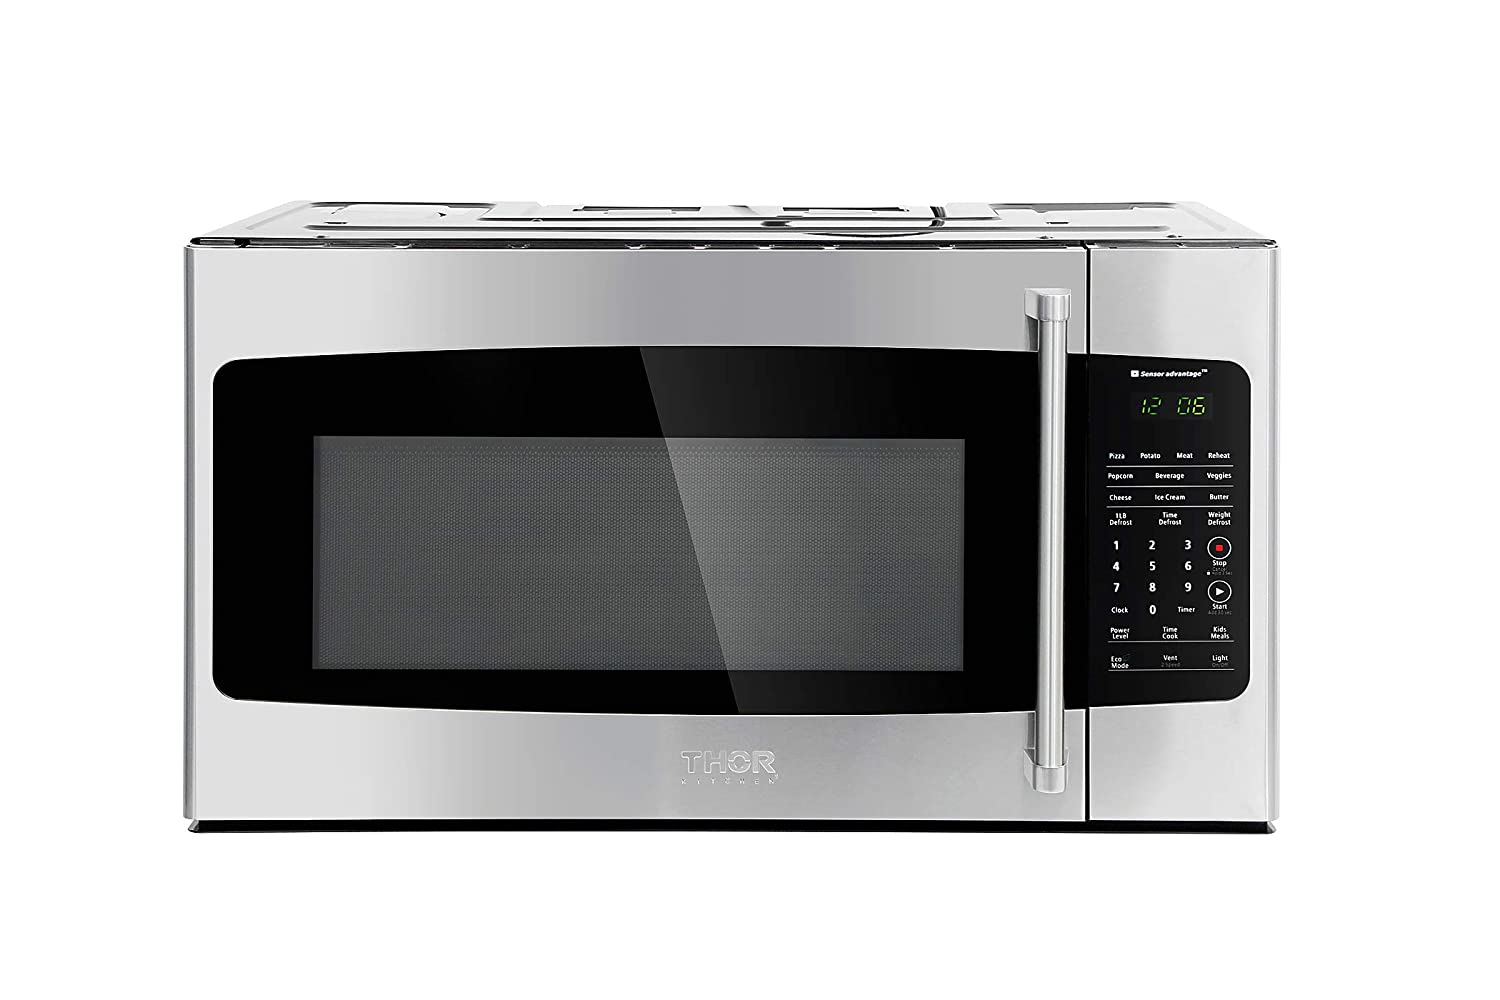 Thor Kitchen — 30in. W 1.7 cu. ft Over the Range Microwave in Stainless Steel with Sensor Cooking OTR